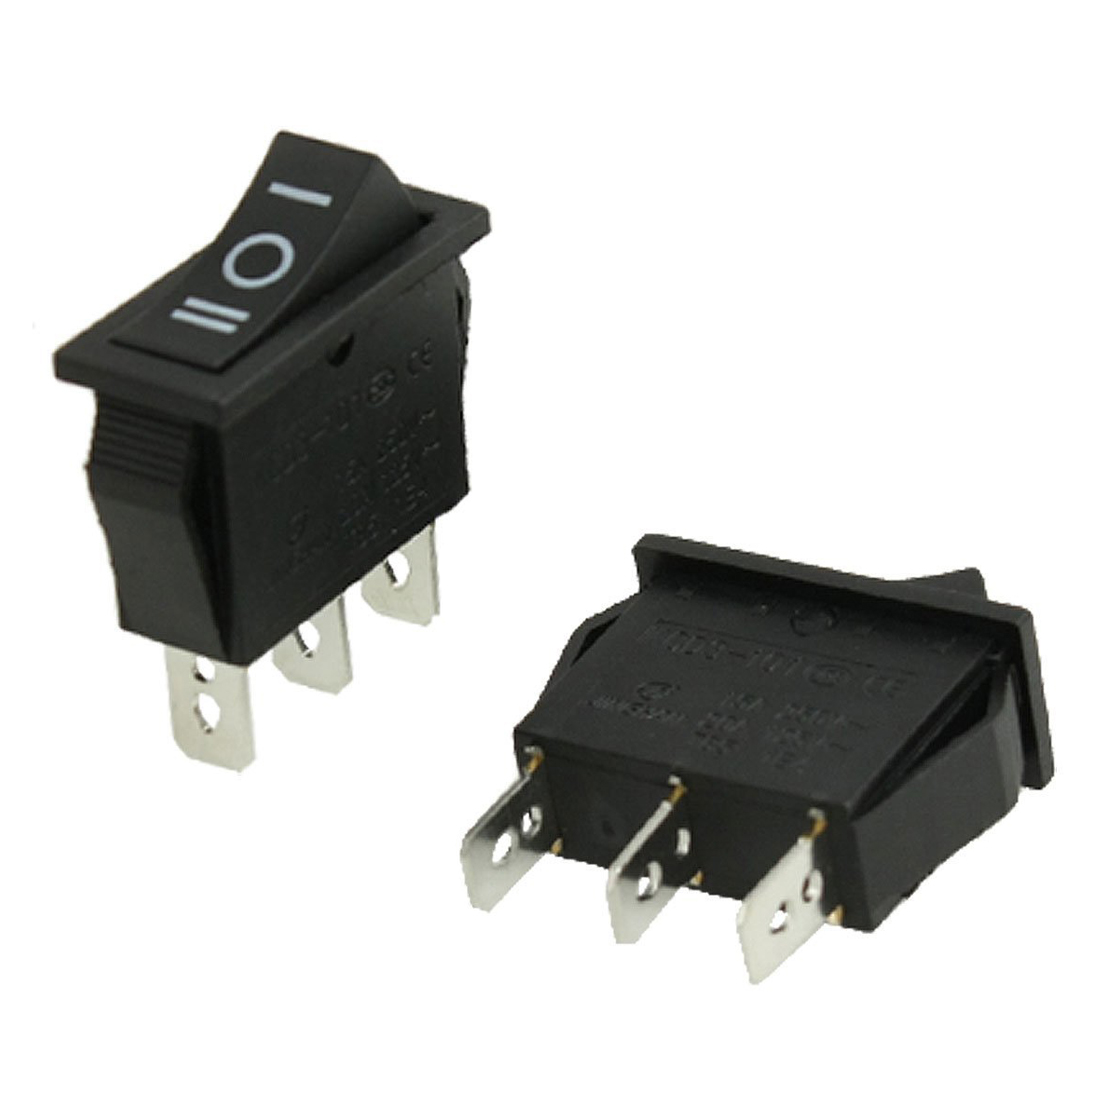 Promotion! 5 pcs x AC 10A/250V 15A/125V 3 Pin SPDT ON-OFF-ON ... on 3 position toggle switch diagram, 3 position pull switch wiring diagram, 3 position lever switch wiring diagram, double toggle switch wire diagram, 3-way ignition switch diagram, 3 position rotary switch wiring diagram, 3 position ignition switch wiring diagram, 3 position rocker switch heater, 3 position rocker switch for bilge pump, 3 position toggle switch wiring, 3 position micro switch wiring diagram, 3 position selector switch wiring diagram,